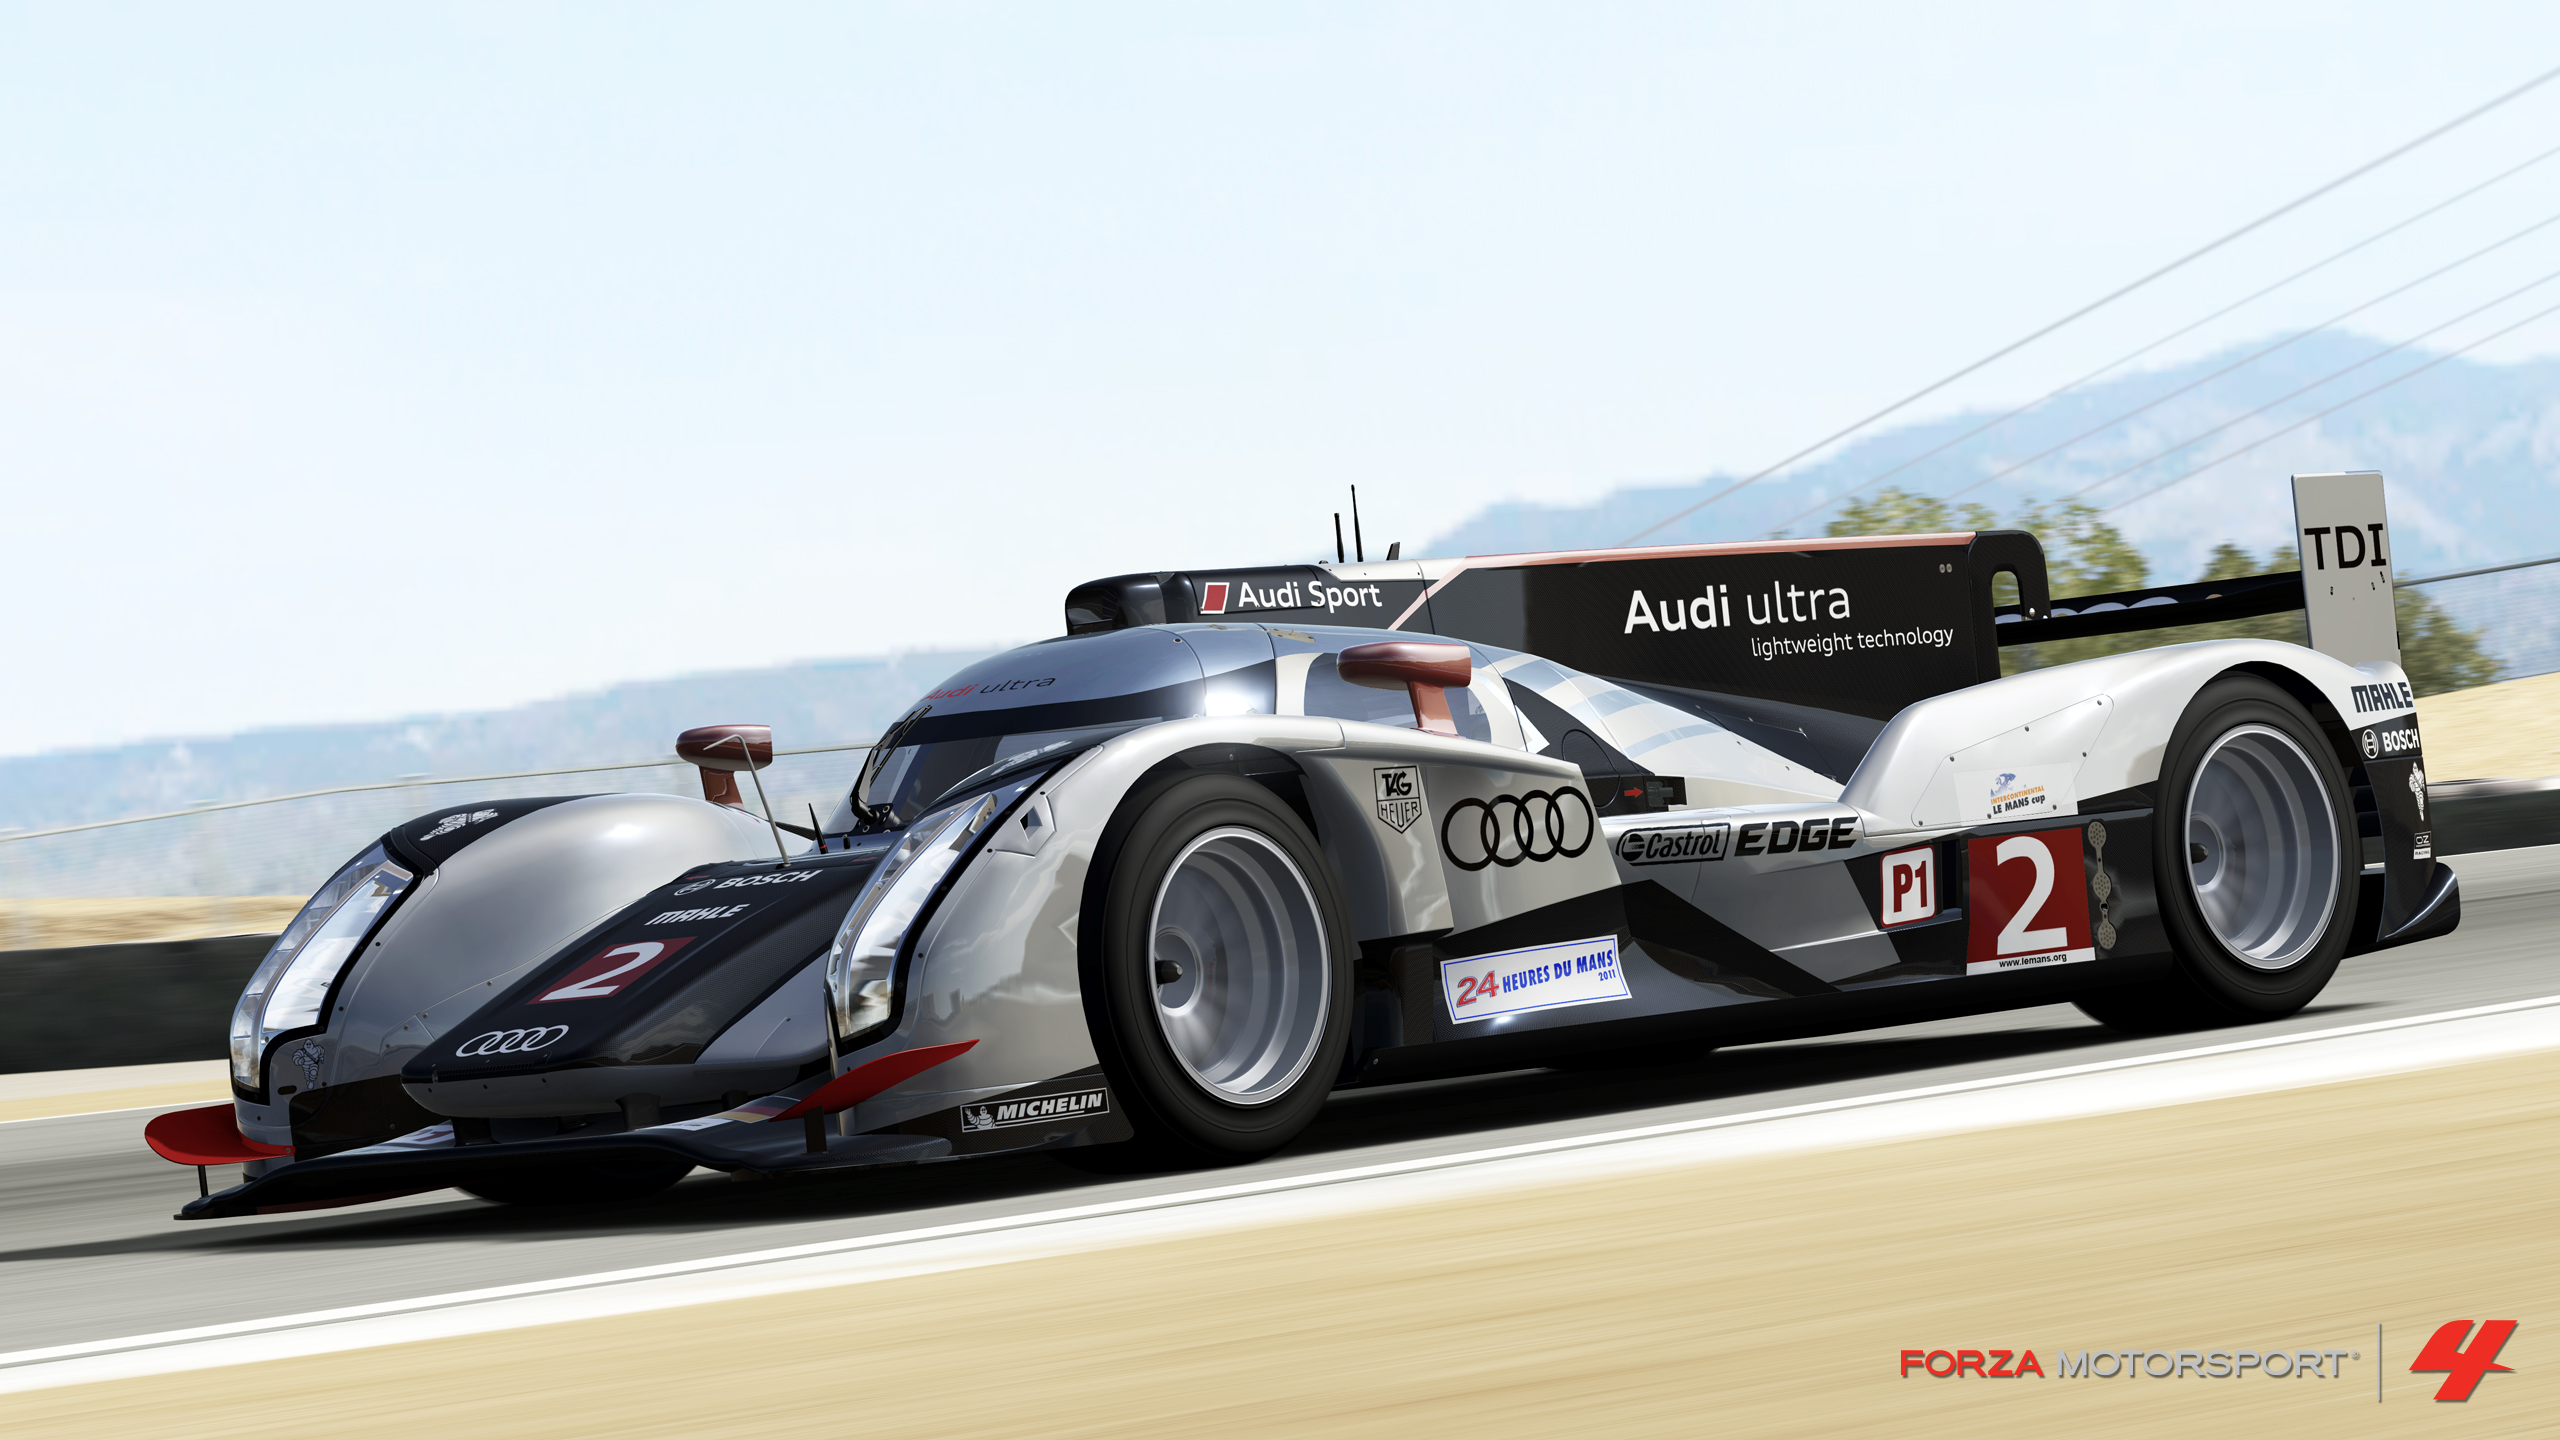 Forza Motorsport 4/February American Le Mans Series Pack